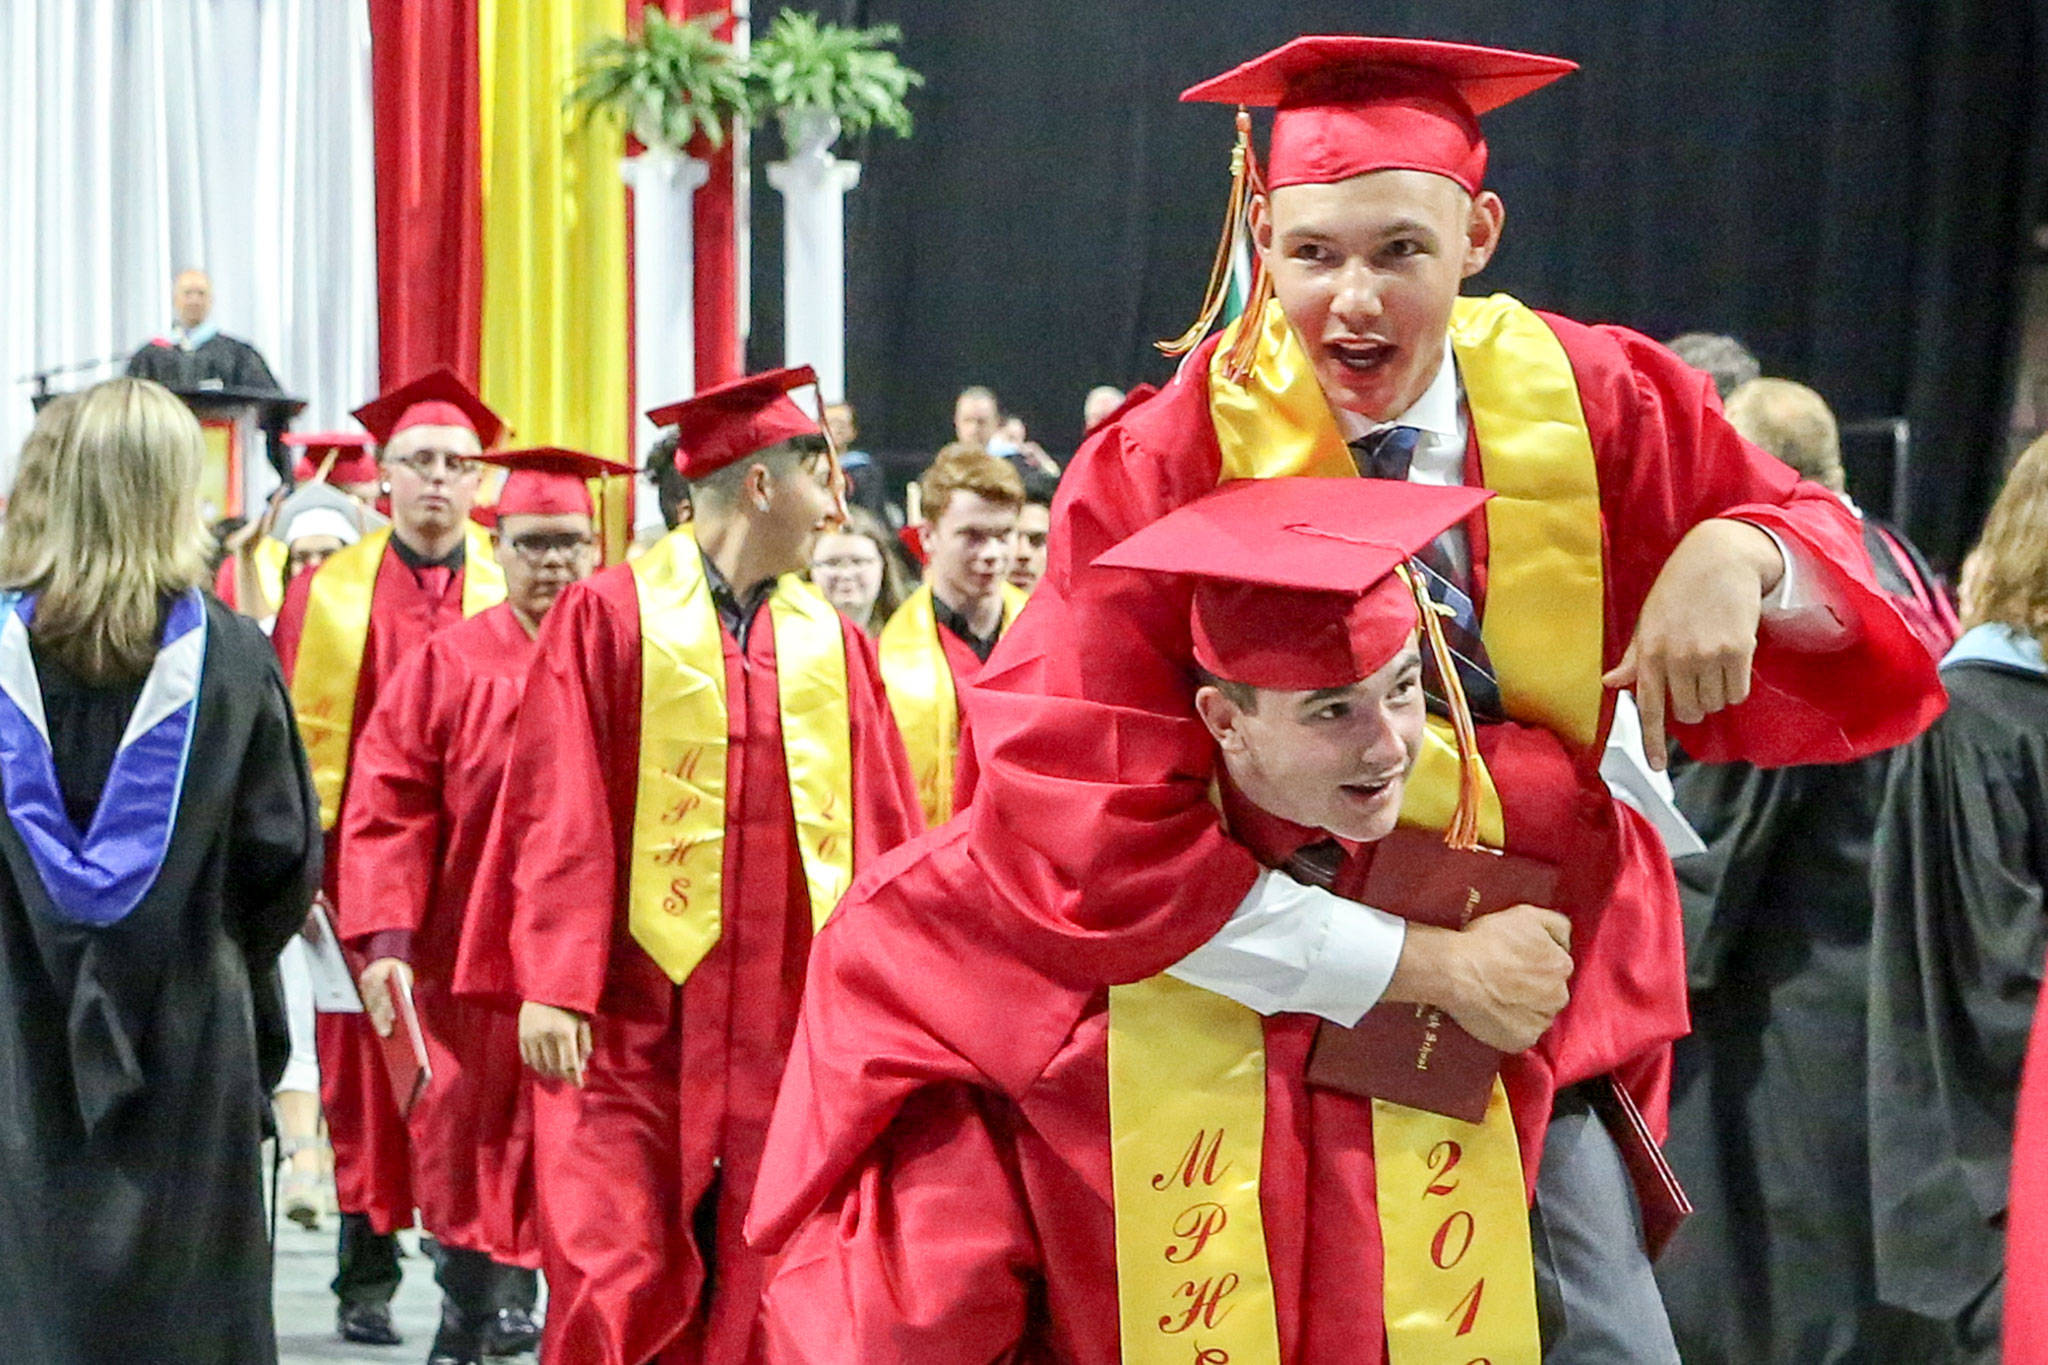 Scenes from the graduation of Marysville-Pilchuck High School's Class of 2019 Wednesday afternoon at Angel of the Winds Arena in Everett on June 12, 2019. (Kevin Clark / The Herald)